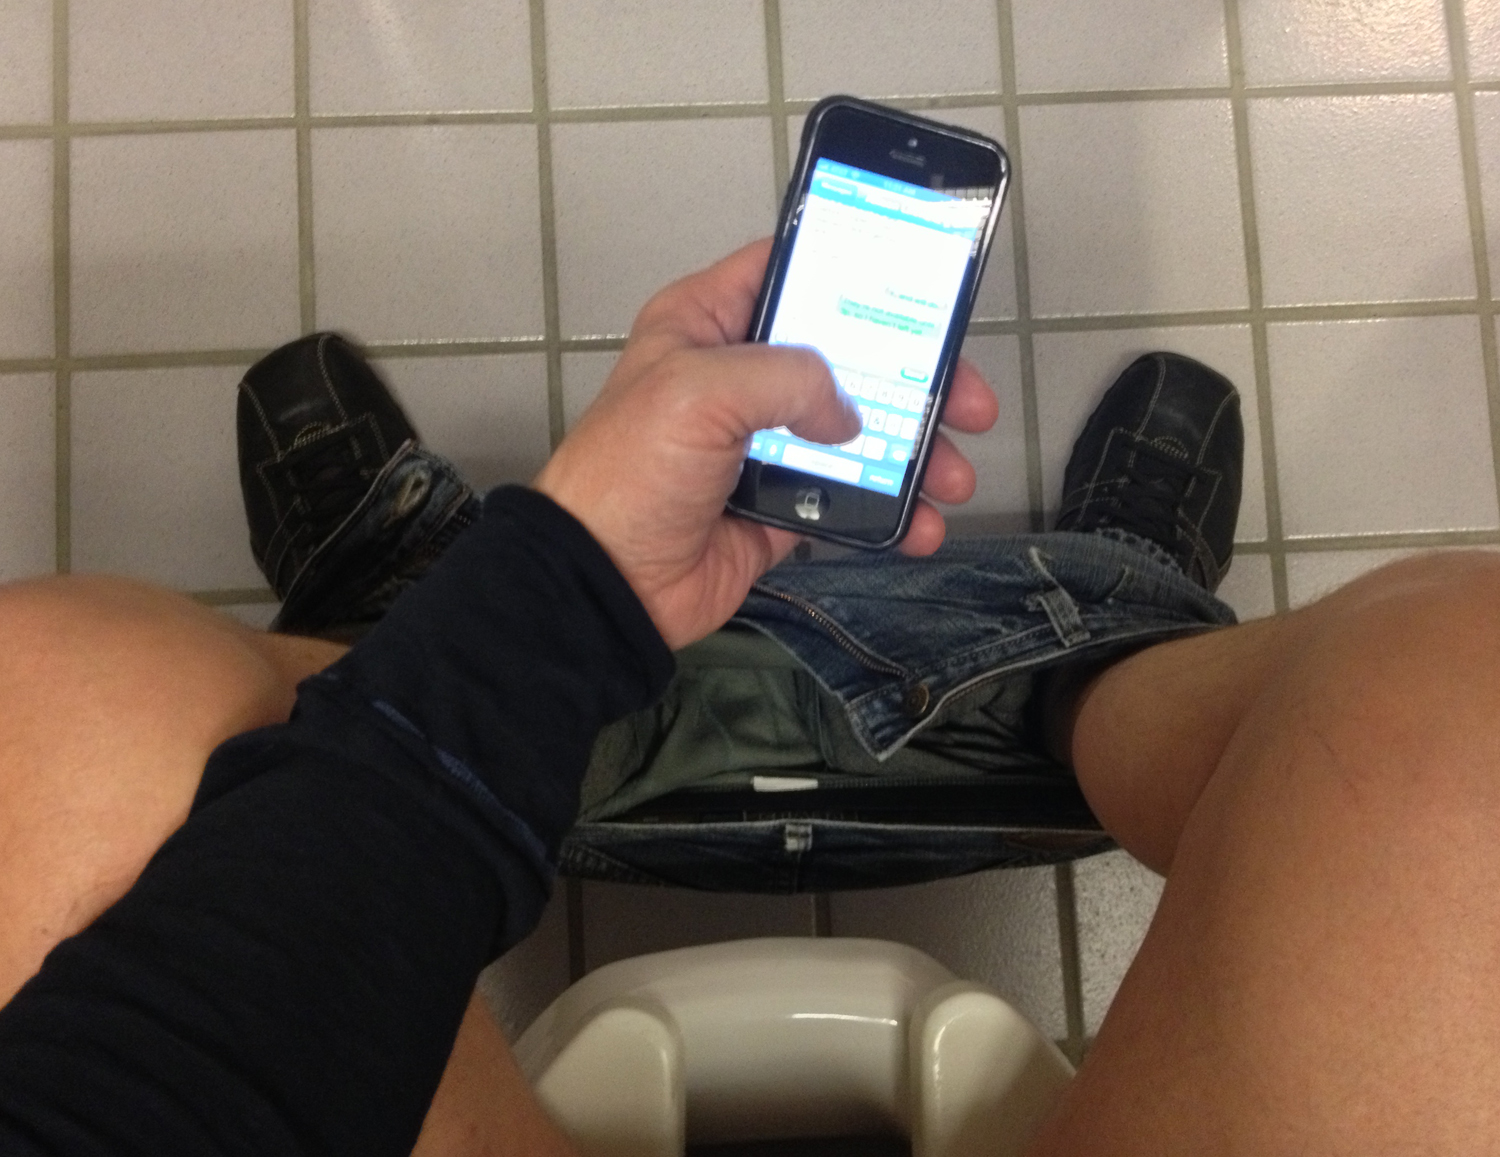 phone addiction in the bathroom